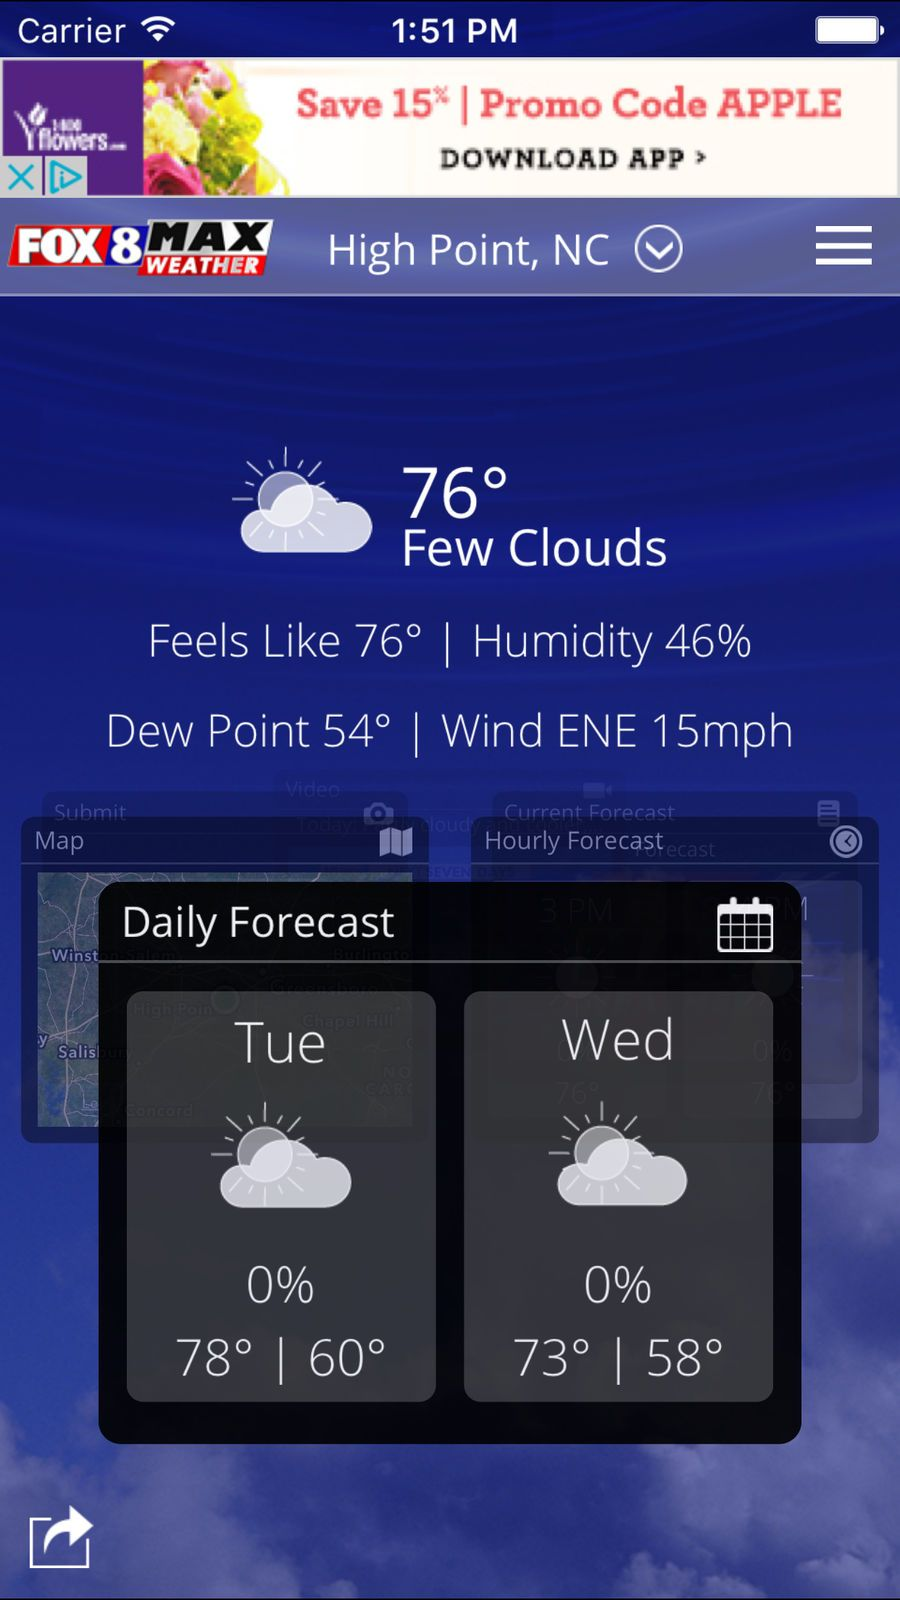 Fox8 max weather chicago weather